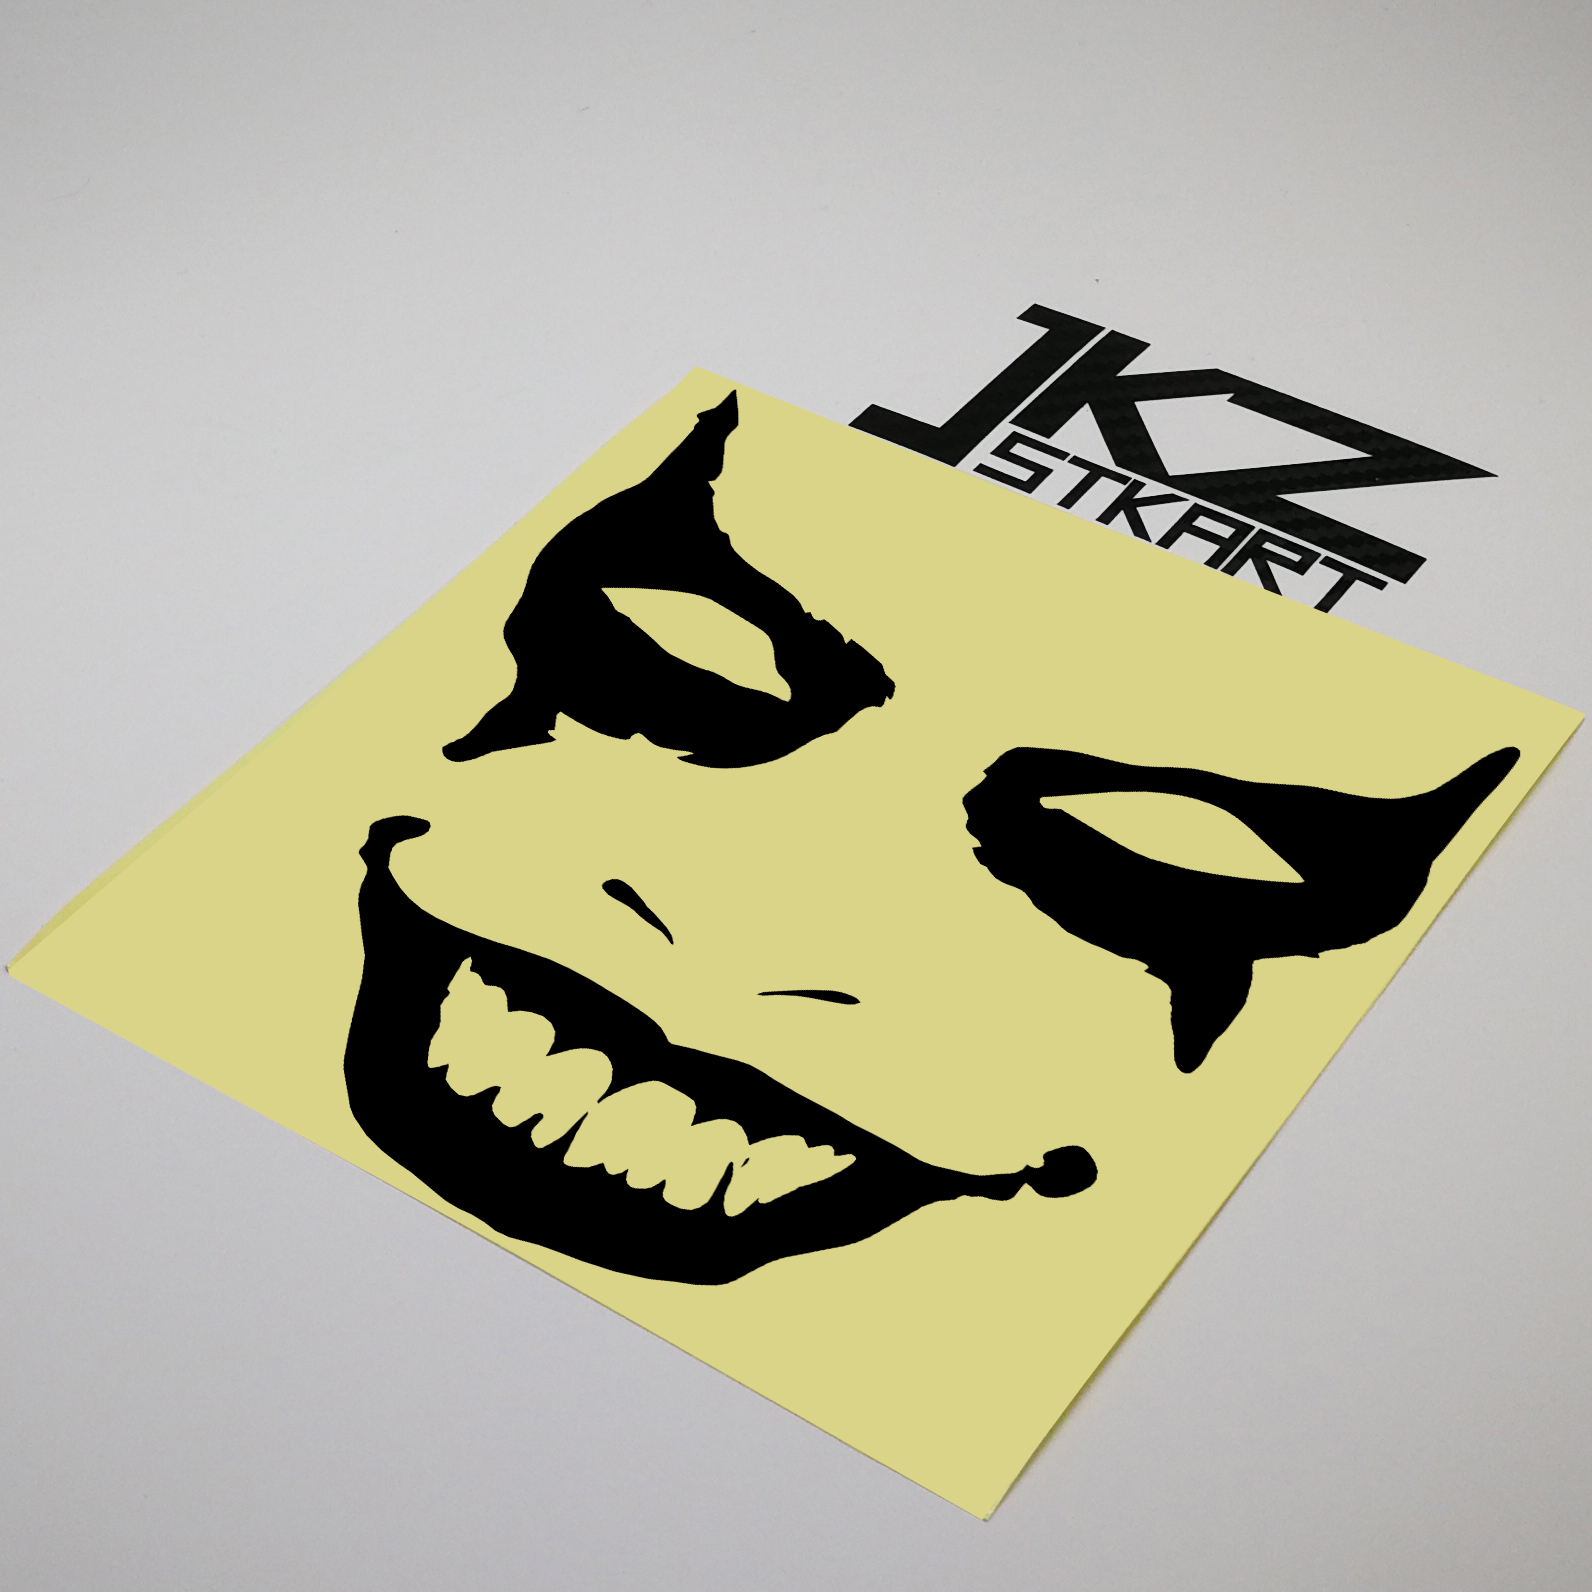 JKZ STKART Vinyl Die Cut Car Sticker Decal Joker Mask Face 15x 15 cm for Motor Bike Laptop Helmet Decorated Sticker image